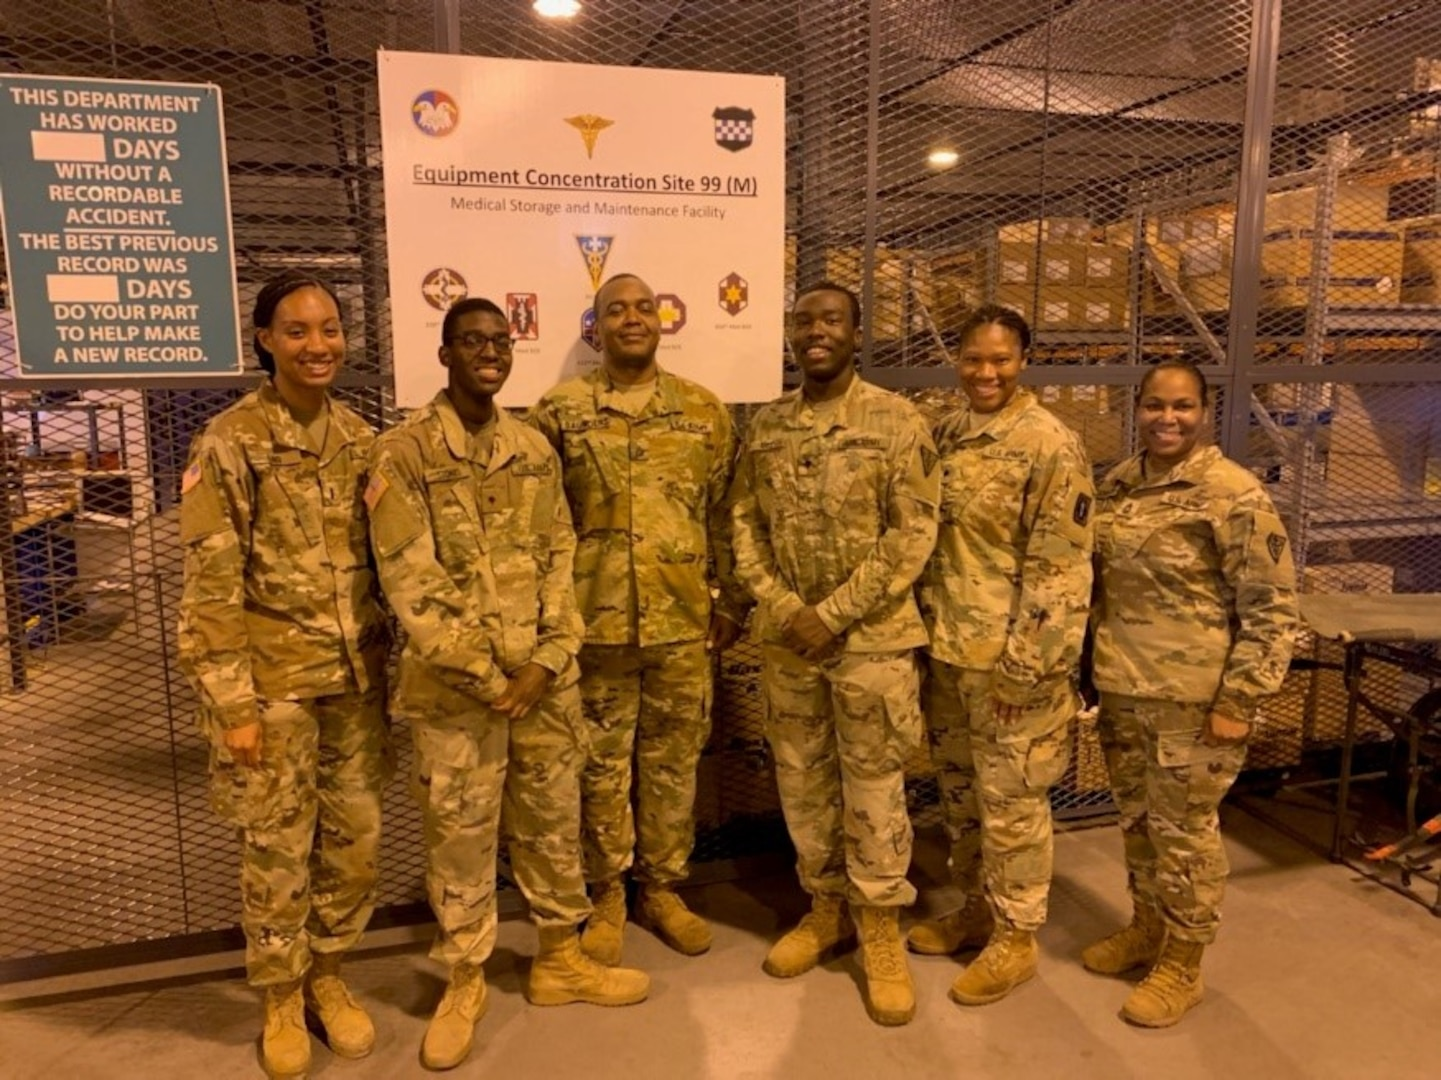 The MCS Team conducted Logistics MOS sustainment training directly contributing to the timely delivery of Class VIII to the IRT Program and prompt submission of required MEDLOG reports.